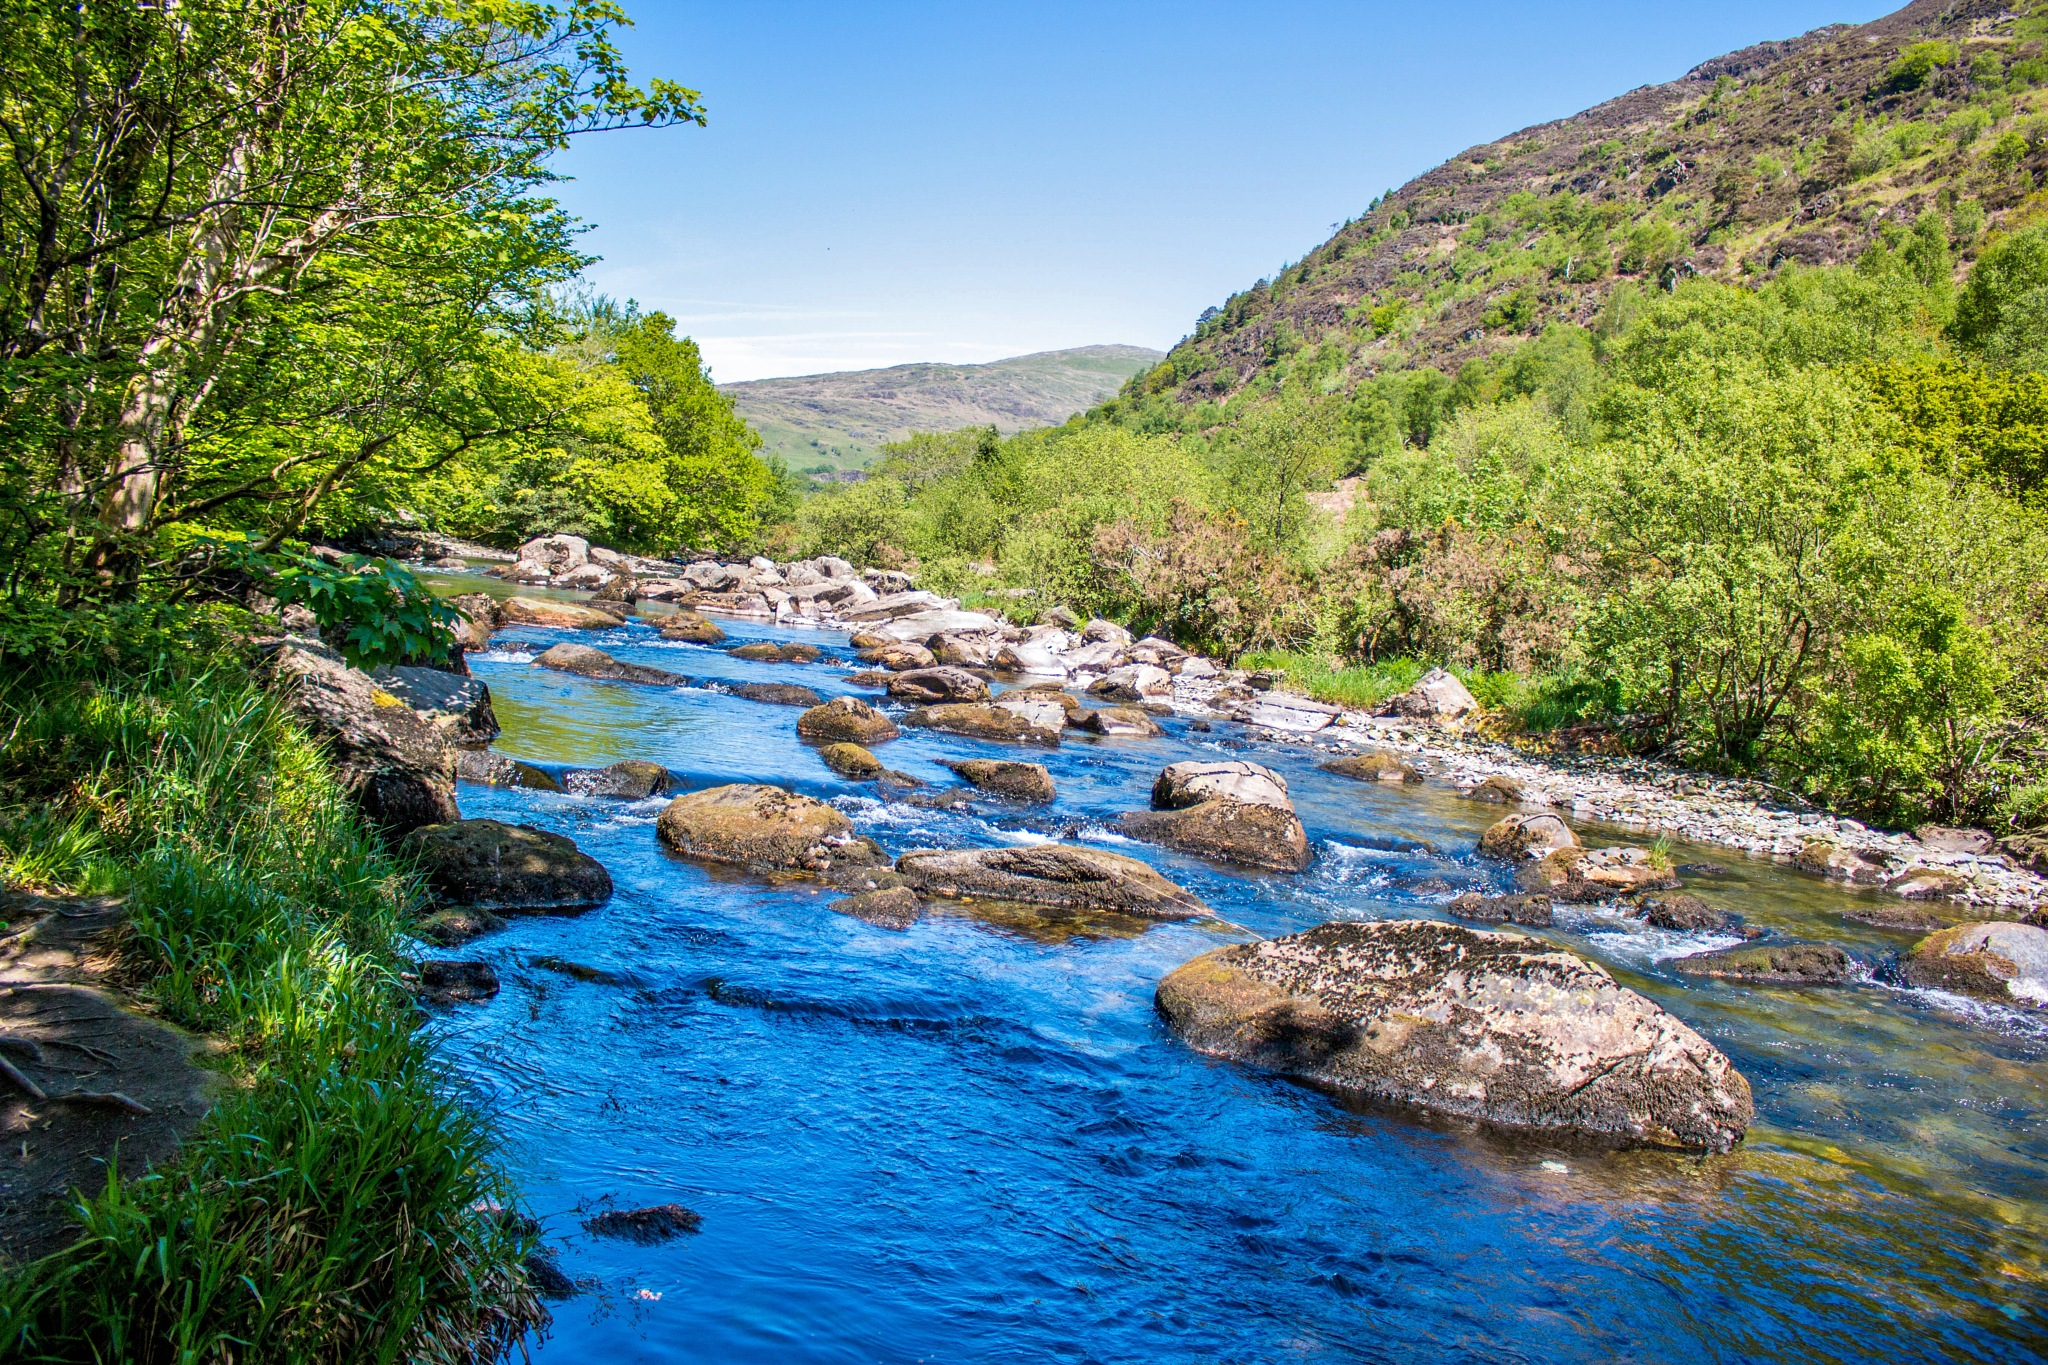 River in Wales by Colin